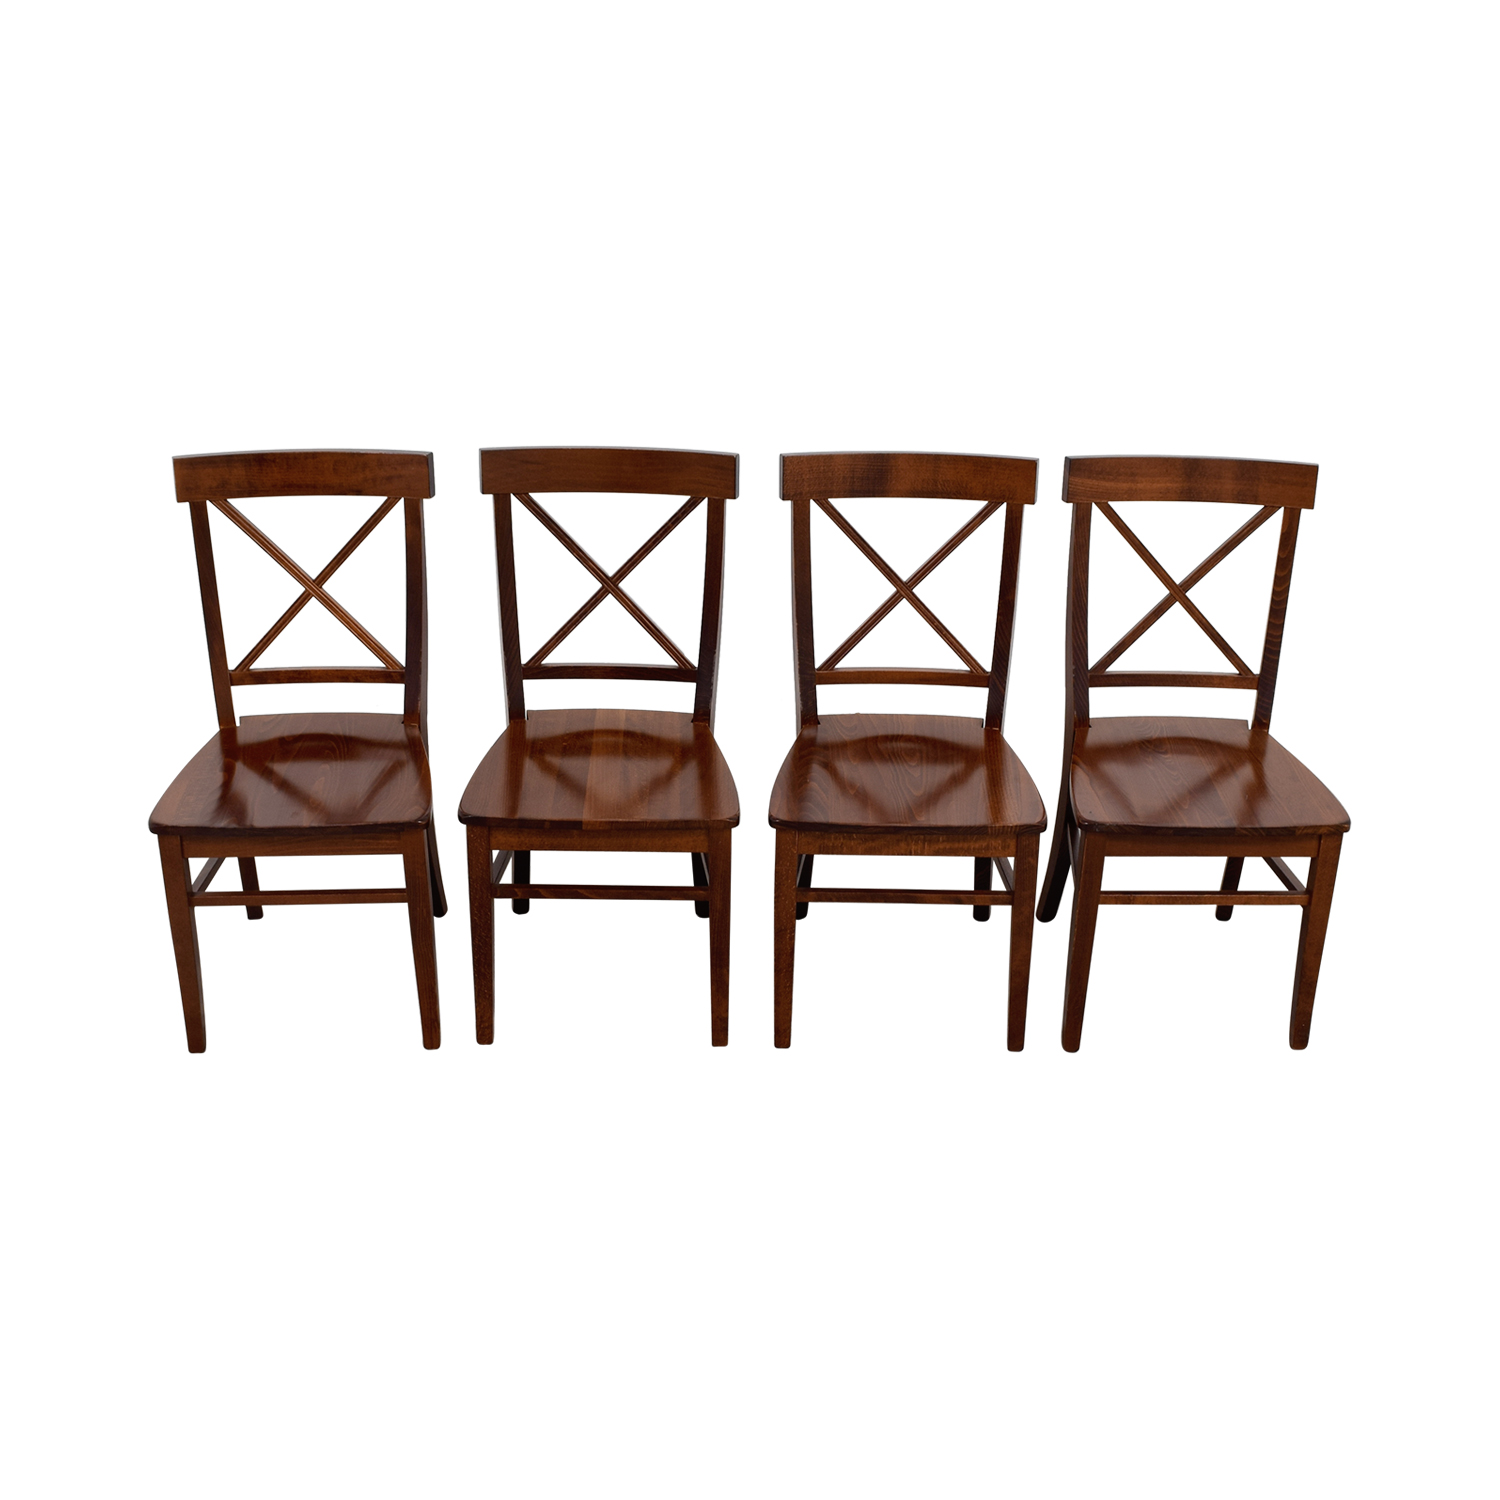 pottery barn chairs dining lane furniture leather office chair 84 off aaron wood